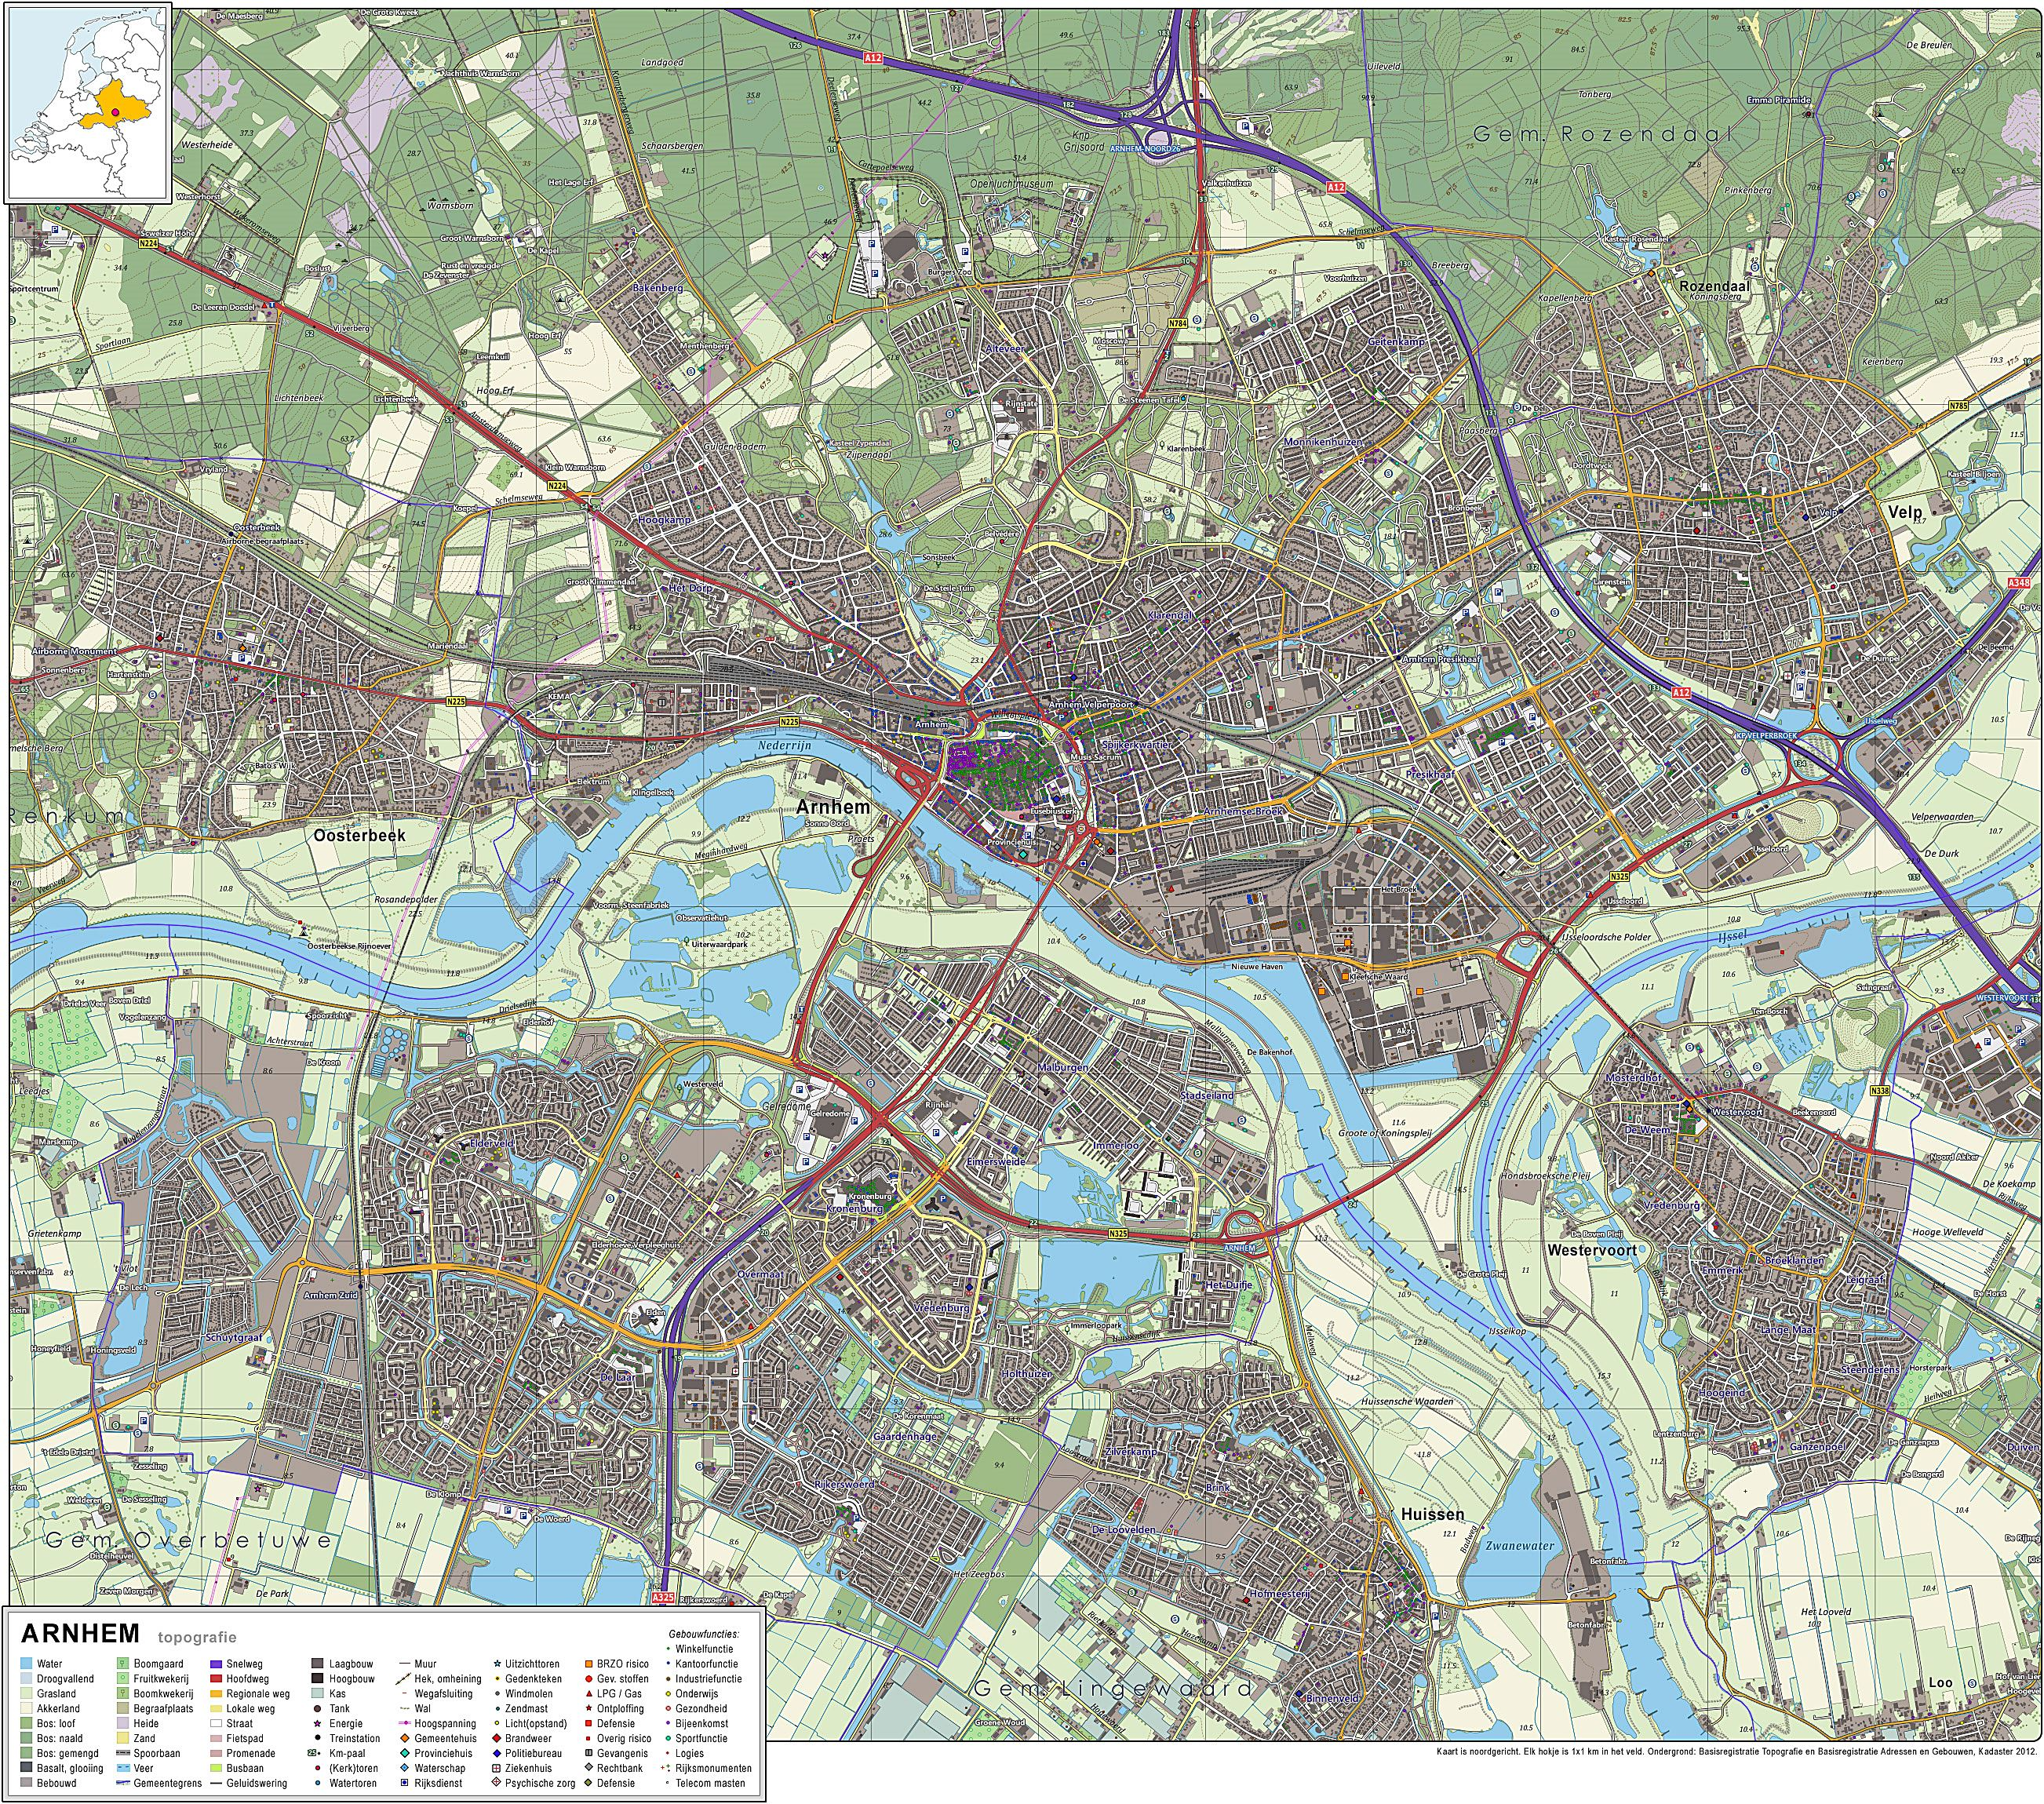 Large Arnhem Maps for Free Download and Print HighResolution and